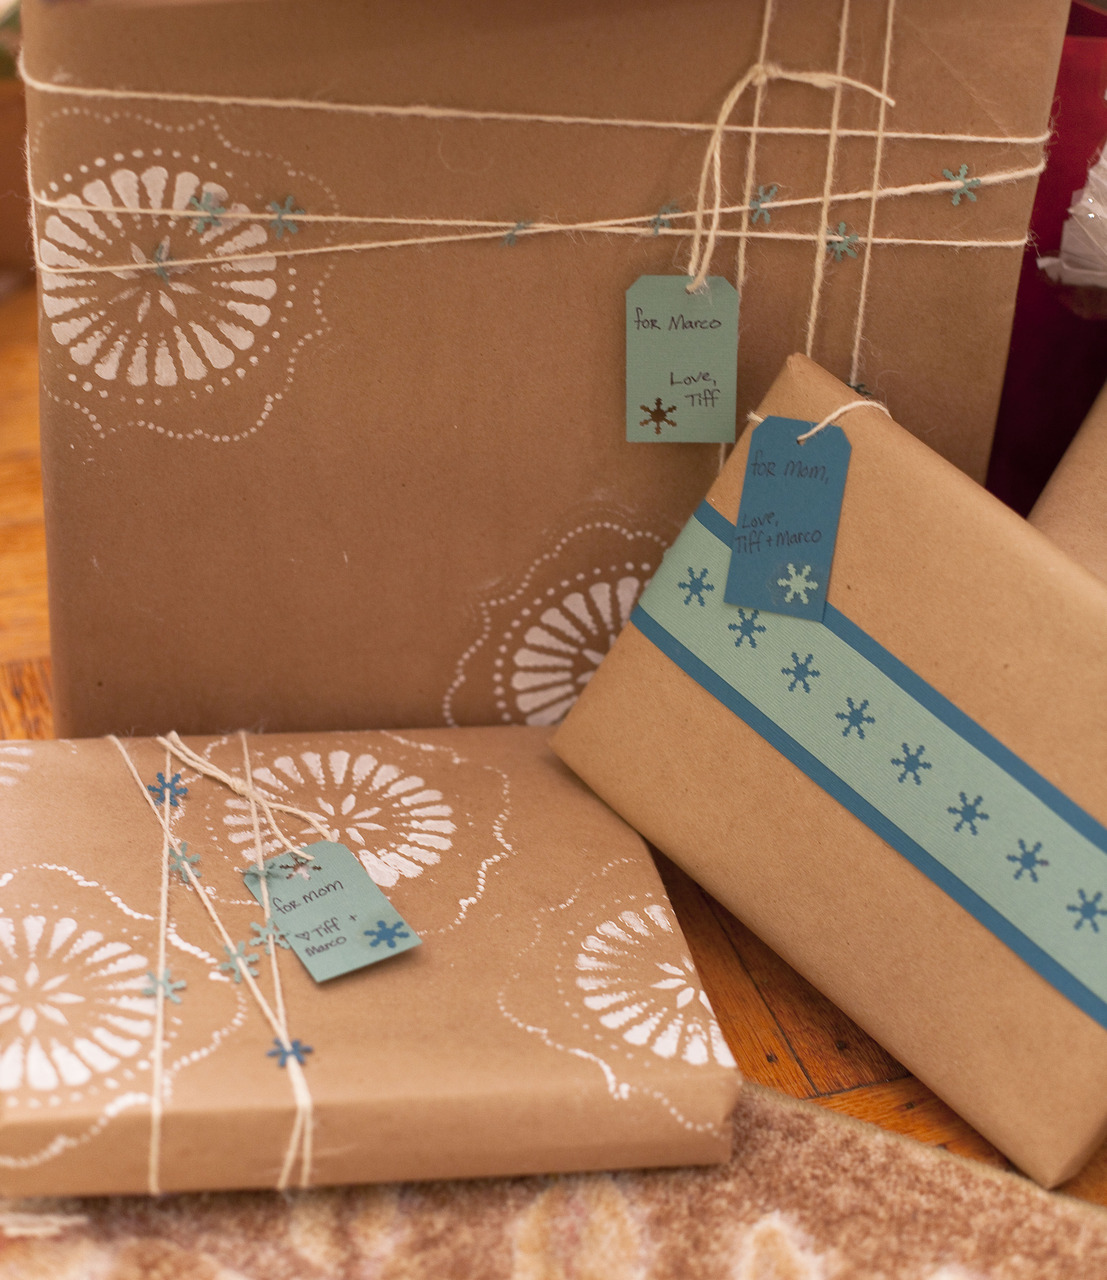 I really get into wrapping presents.  I love using simple kraft paper and then spicing it up with all kinds of crafty decorations.